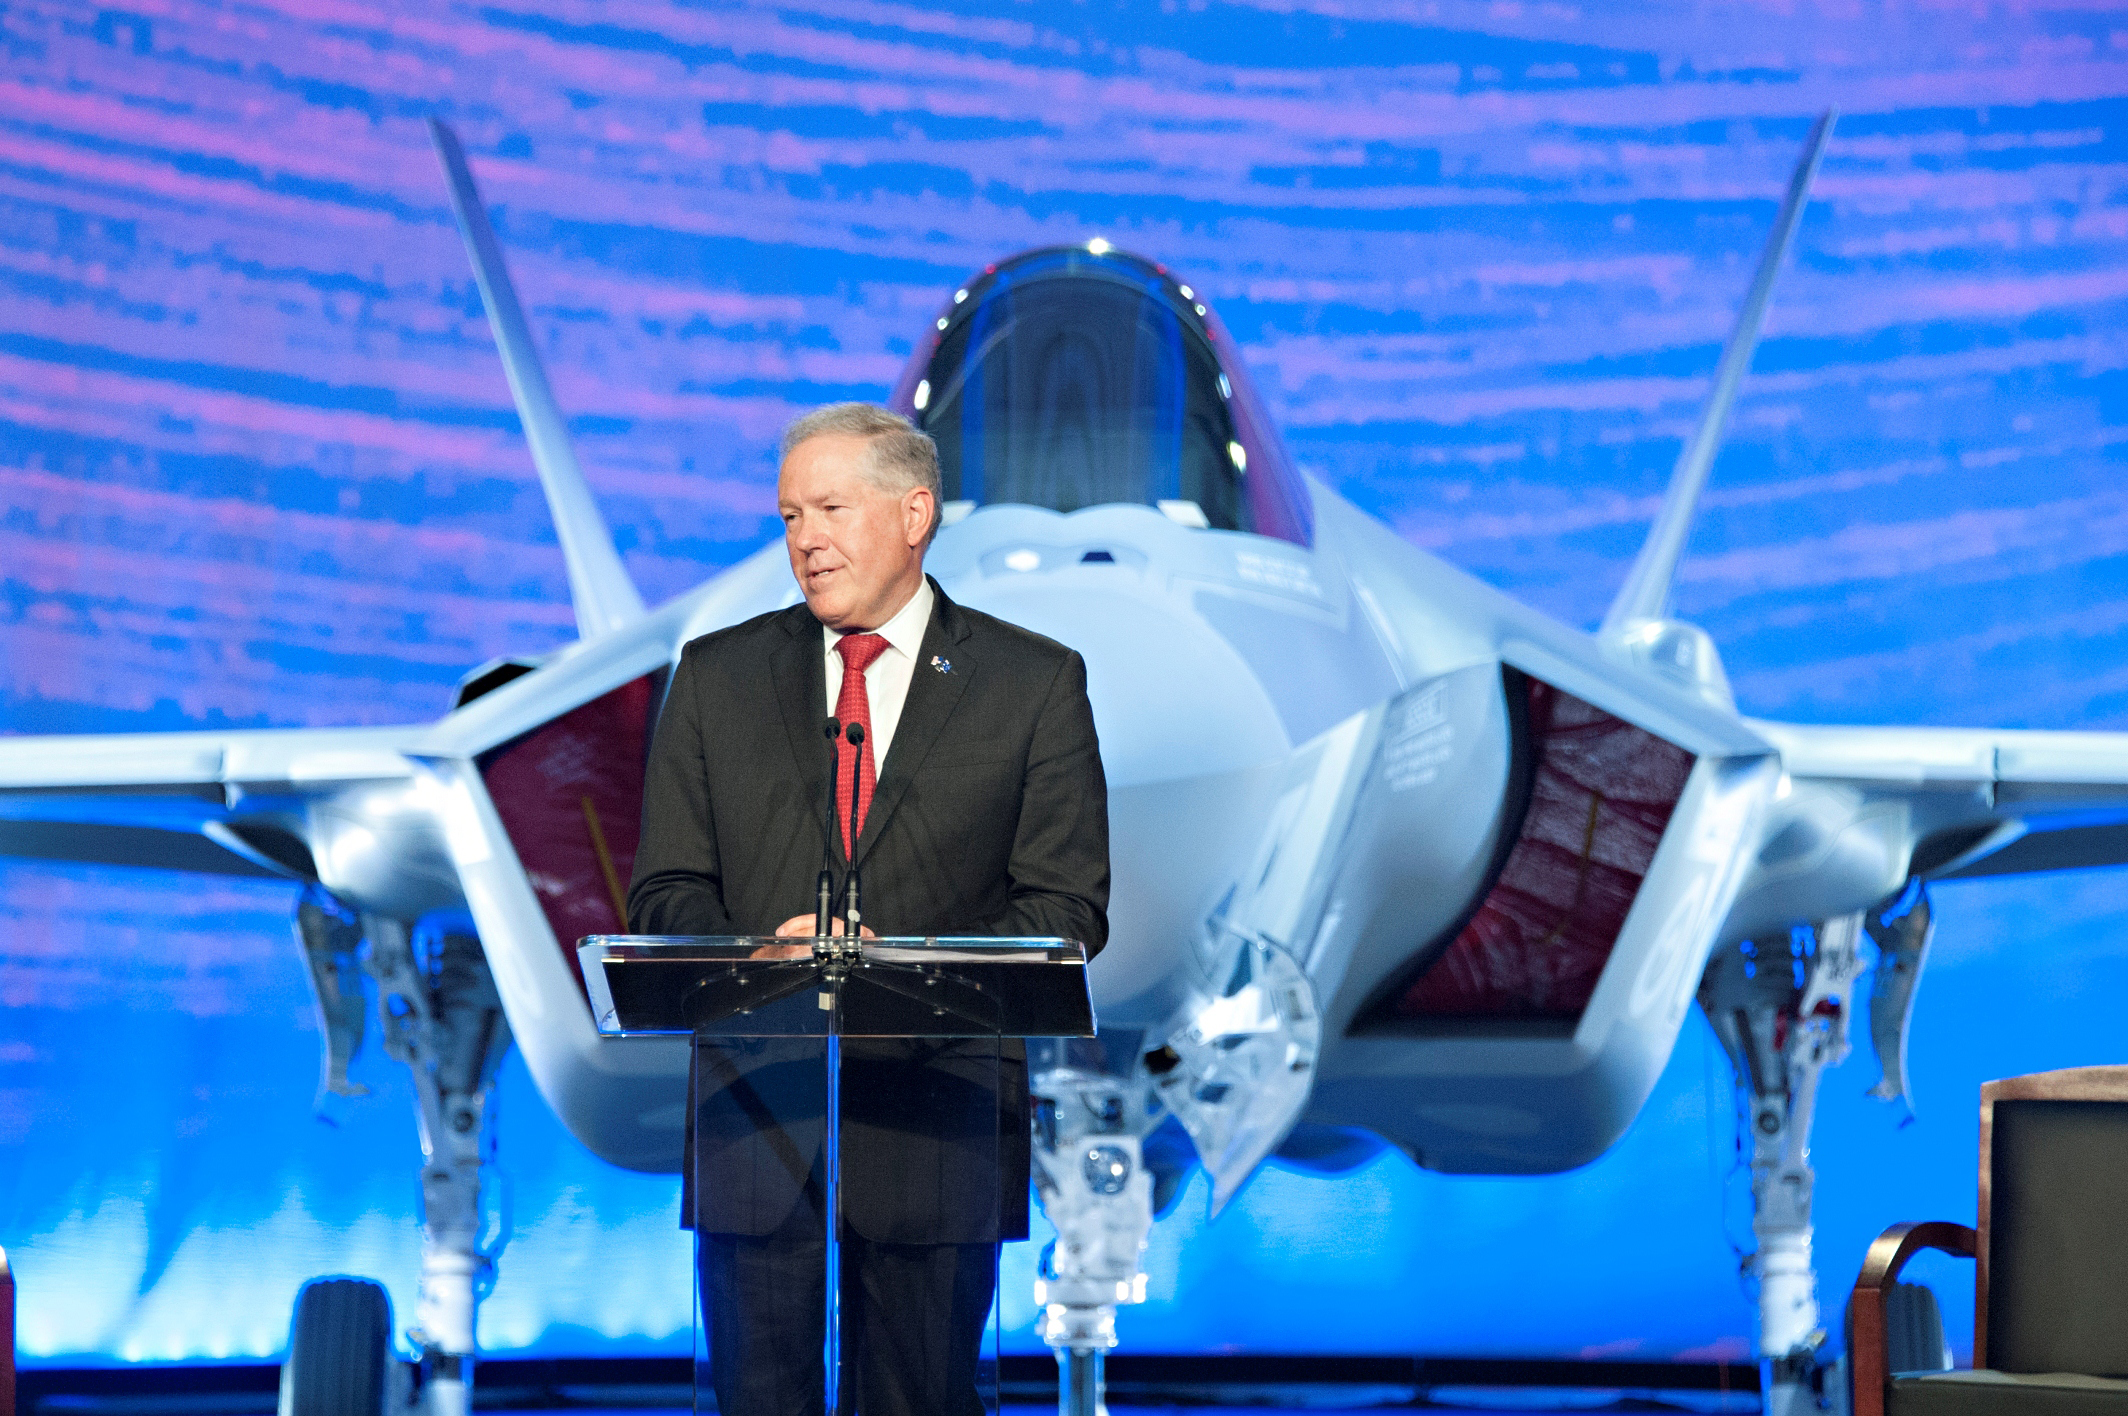 Frank Kendall, undersecretary of defense for acquisition, technology and logistics, speaks at a roll-out ceremony for the first two F-35 Lightning II joint strike fighter aircraft for the Royal Australian Air Force at Lockheed Martin in Fort Worth, Texas, July 24, 2014. Kendall said the aircraft represents an exponential leap in capability on the cutting edge of technology, and is an integral component of the ongoing U.S. and Australian commitment to stability in the Asia-Pacific region. (Department of Defense)